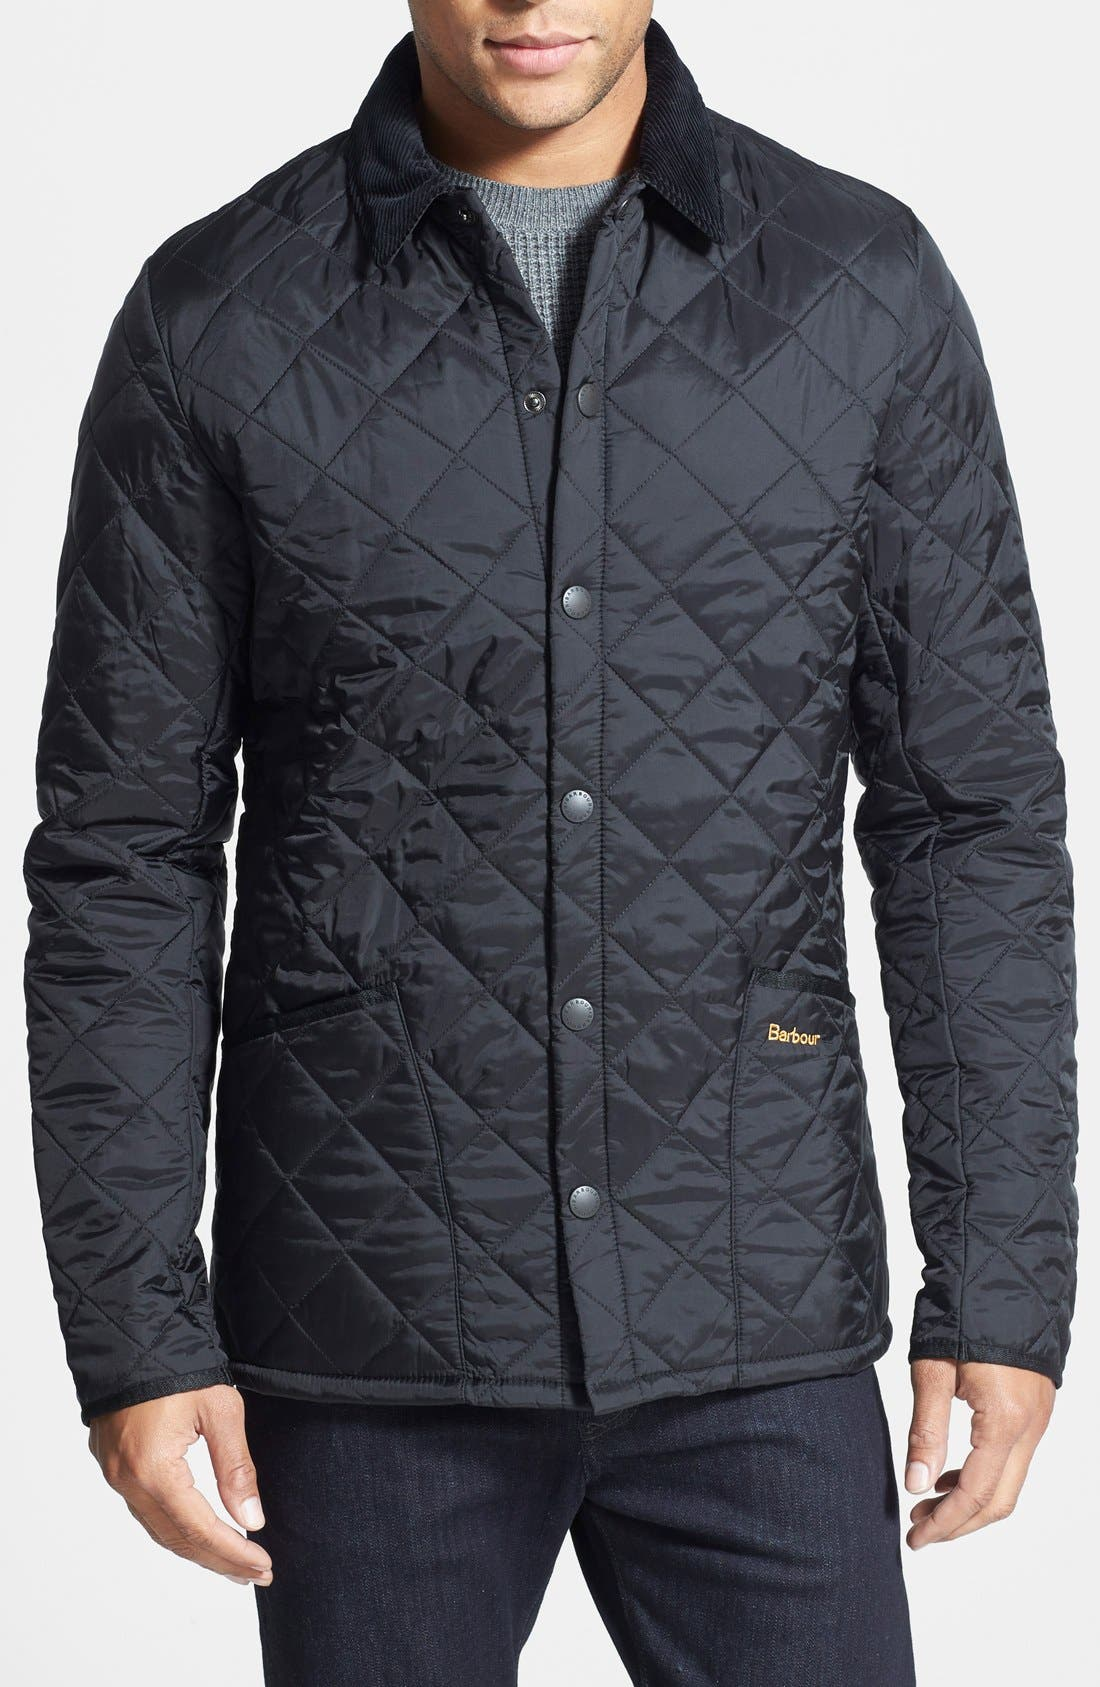 BARBOUR, Heritage Liddesdale Regular Fit Quilted Jacket, Main thumbnail 1, color, BLACK